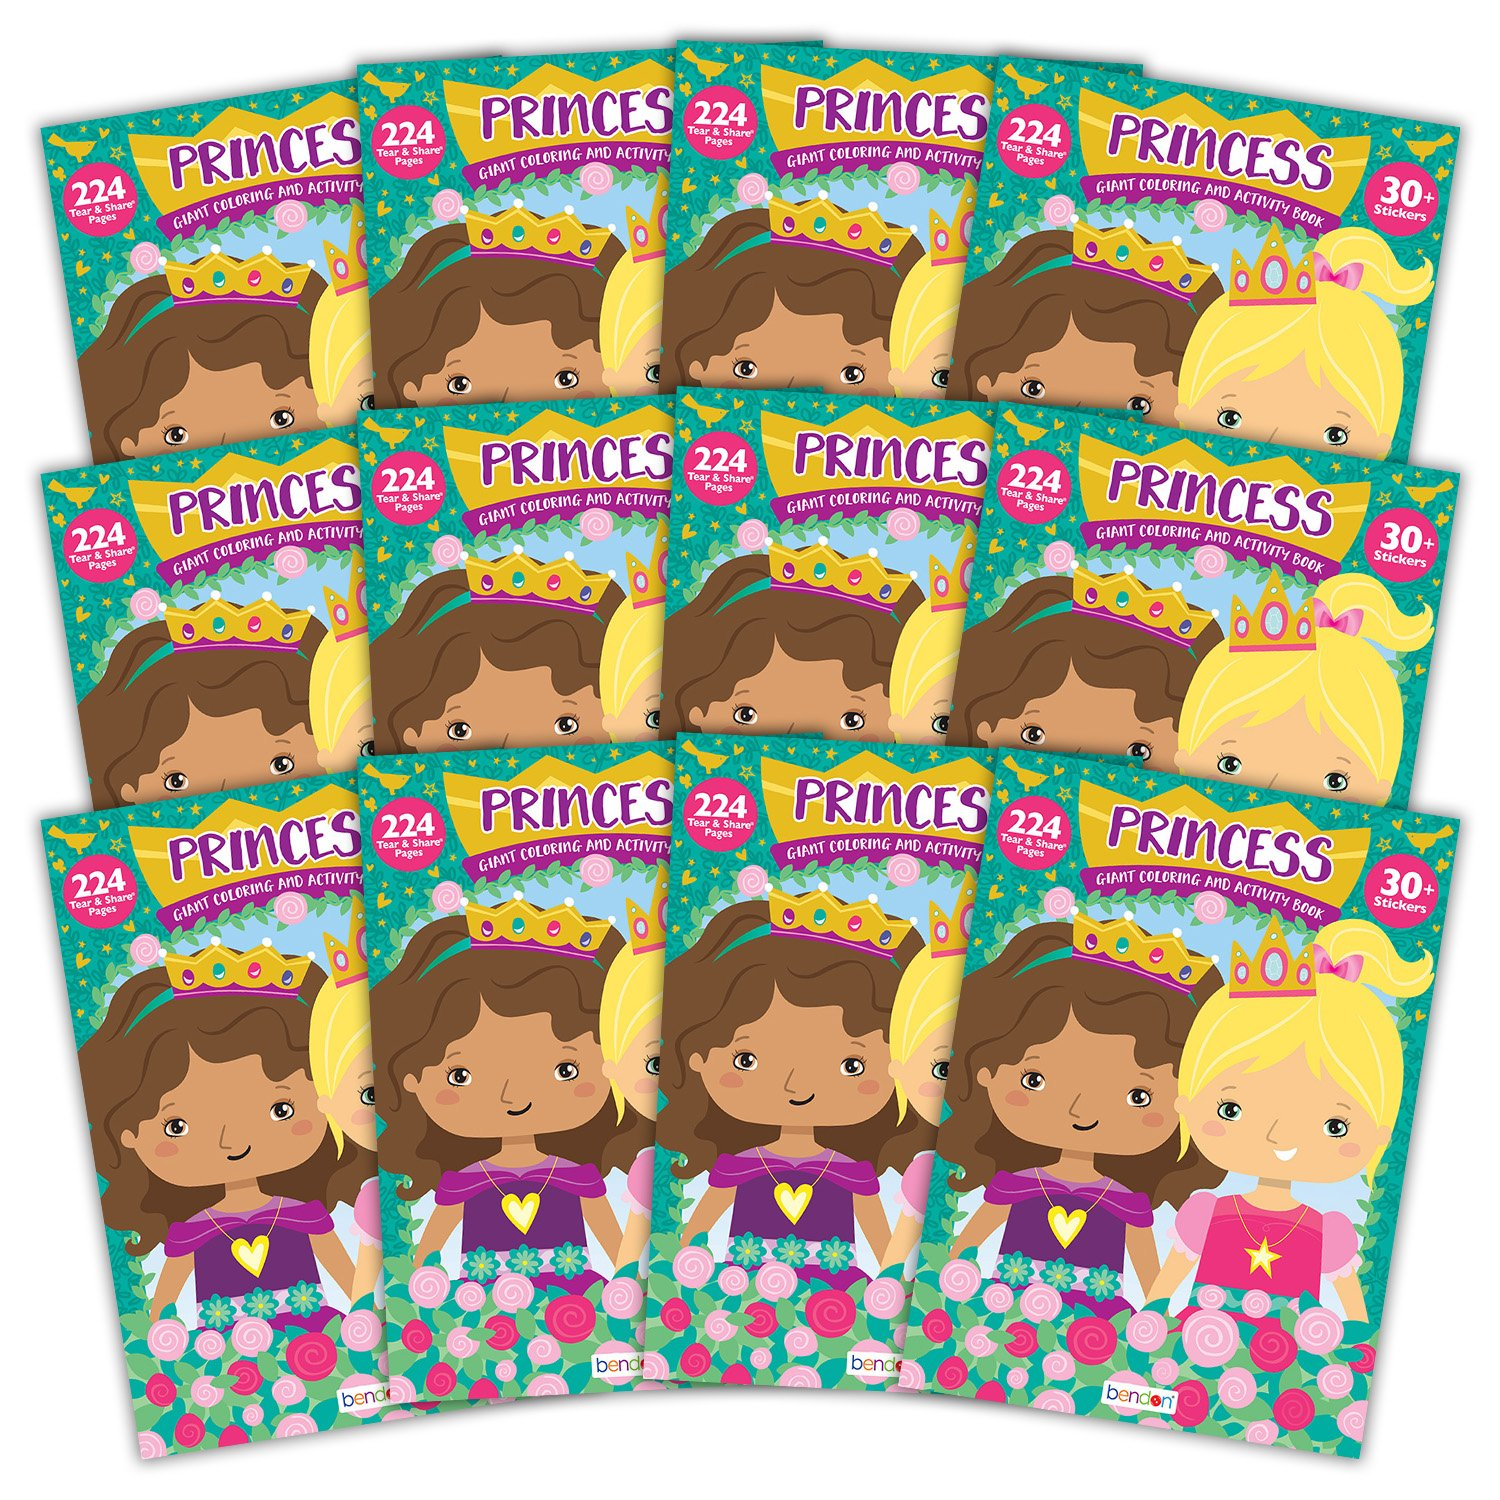 Bendon 43159-Amzb Princess 224-Page Coloring and Activity Book 12 Count Bendon Inc